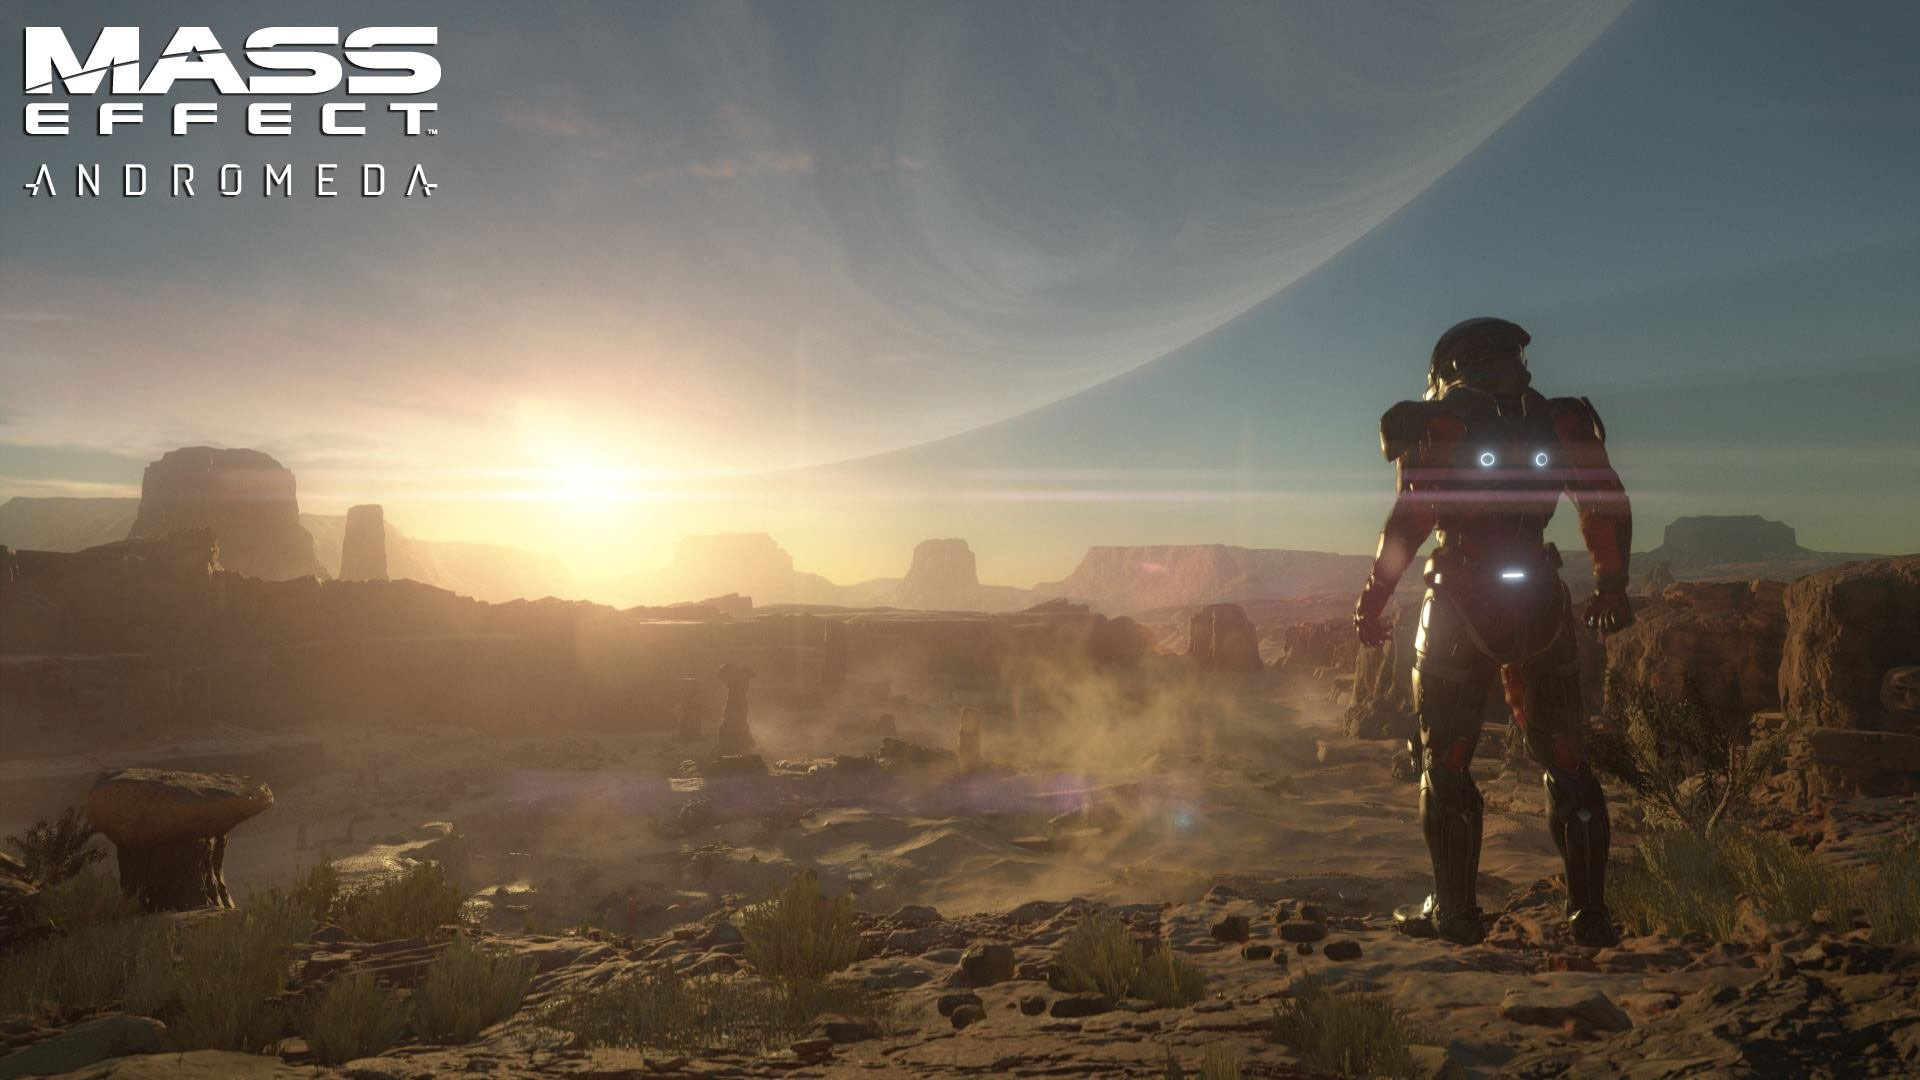 Free Download Mass Effect Andromeda Wallpapers In Ultra Hd 4k